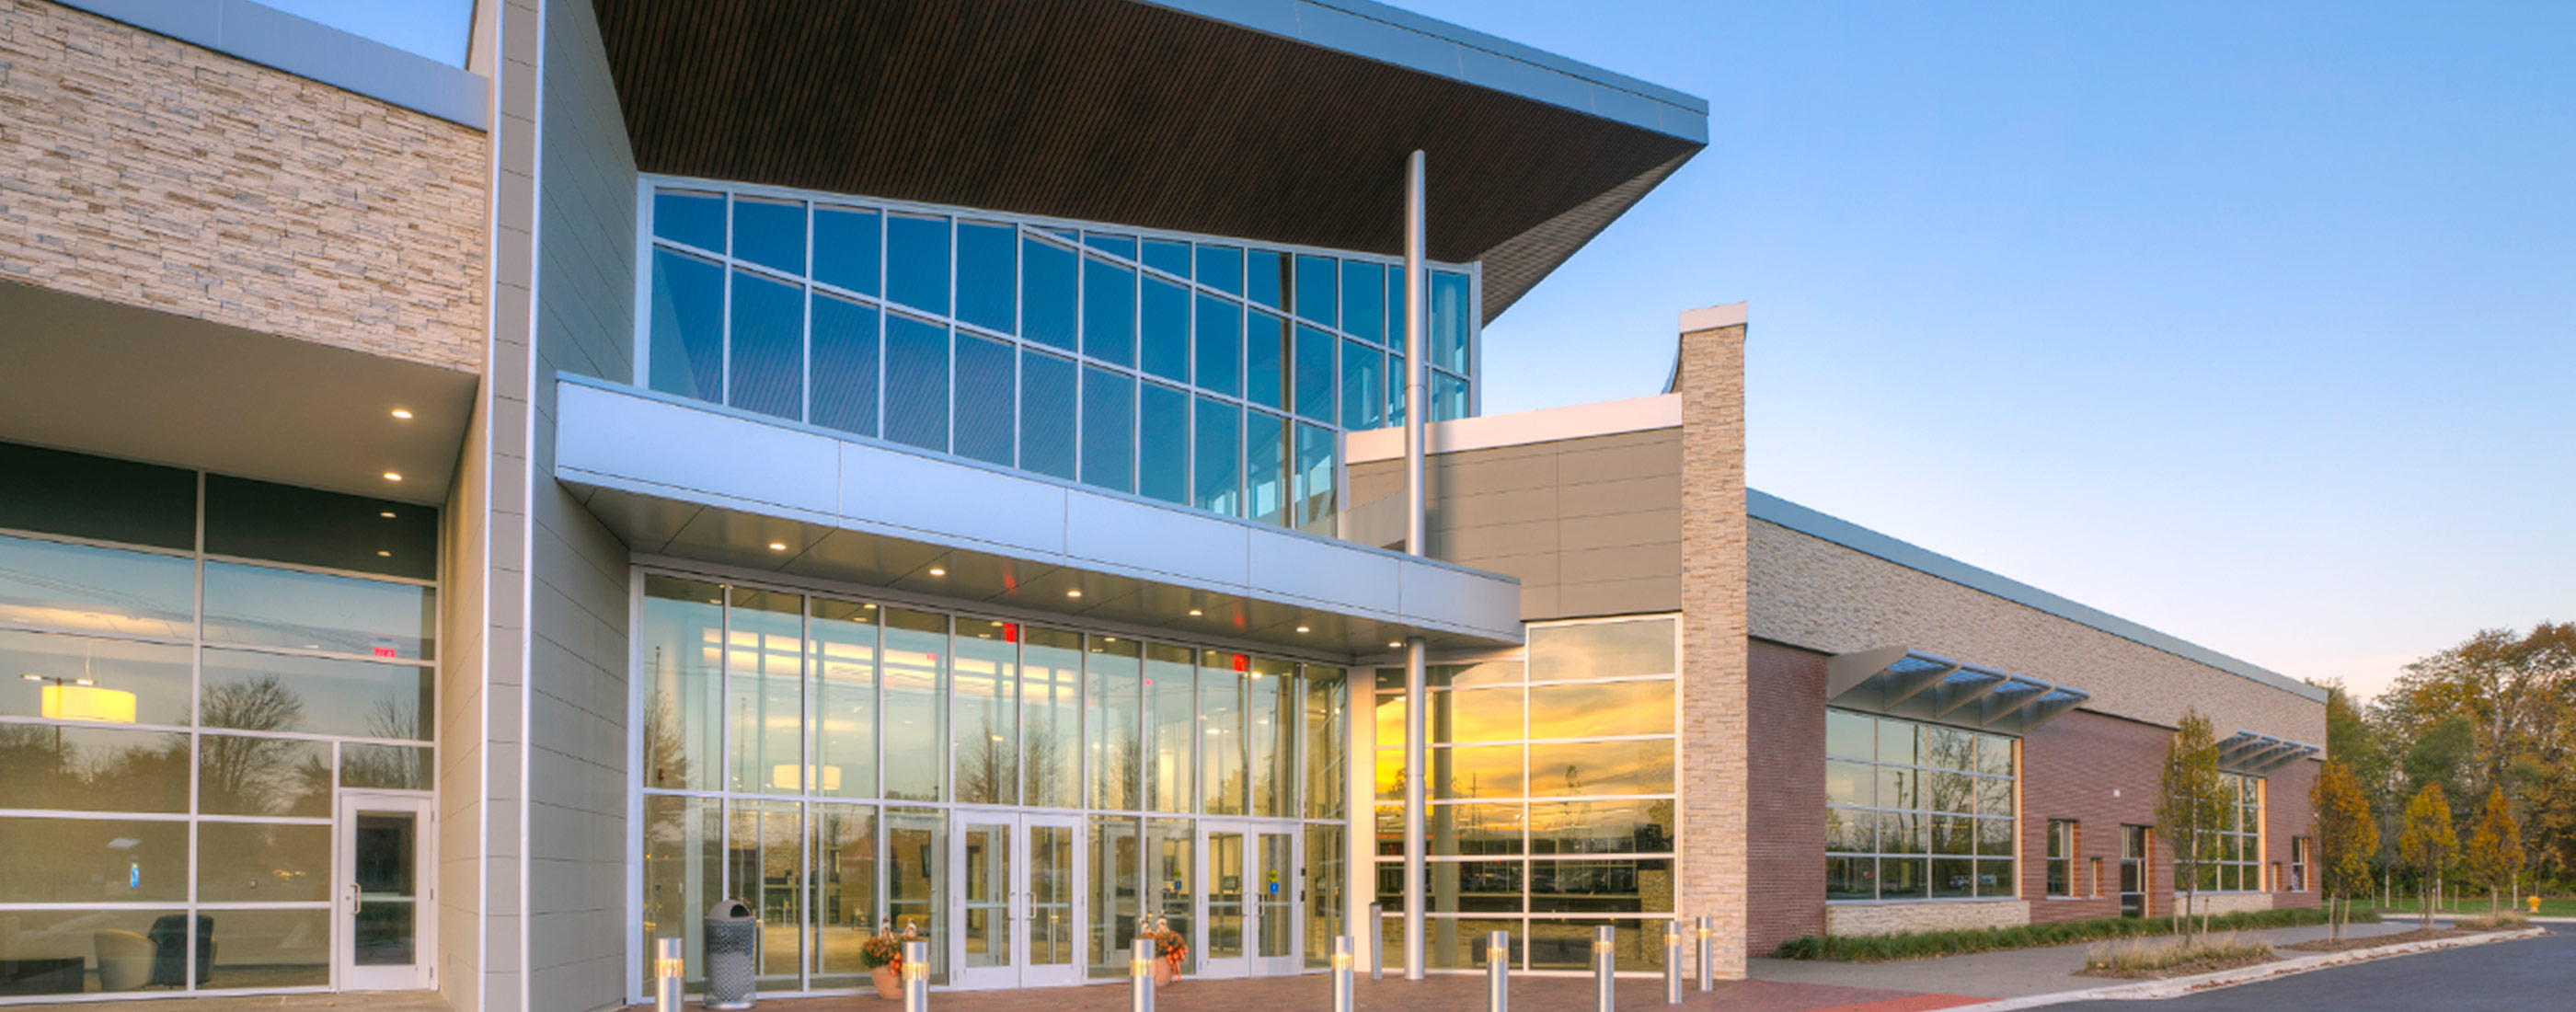 Westland, Michigan's City Hall boasts expansive glass panels so daylight can flood an open concept interior.